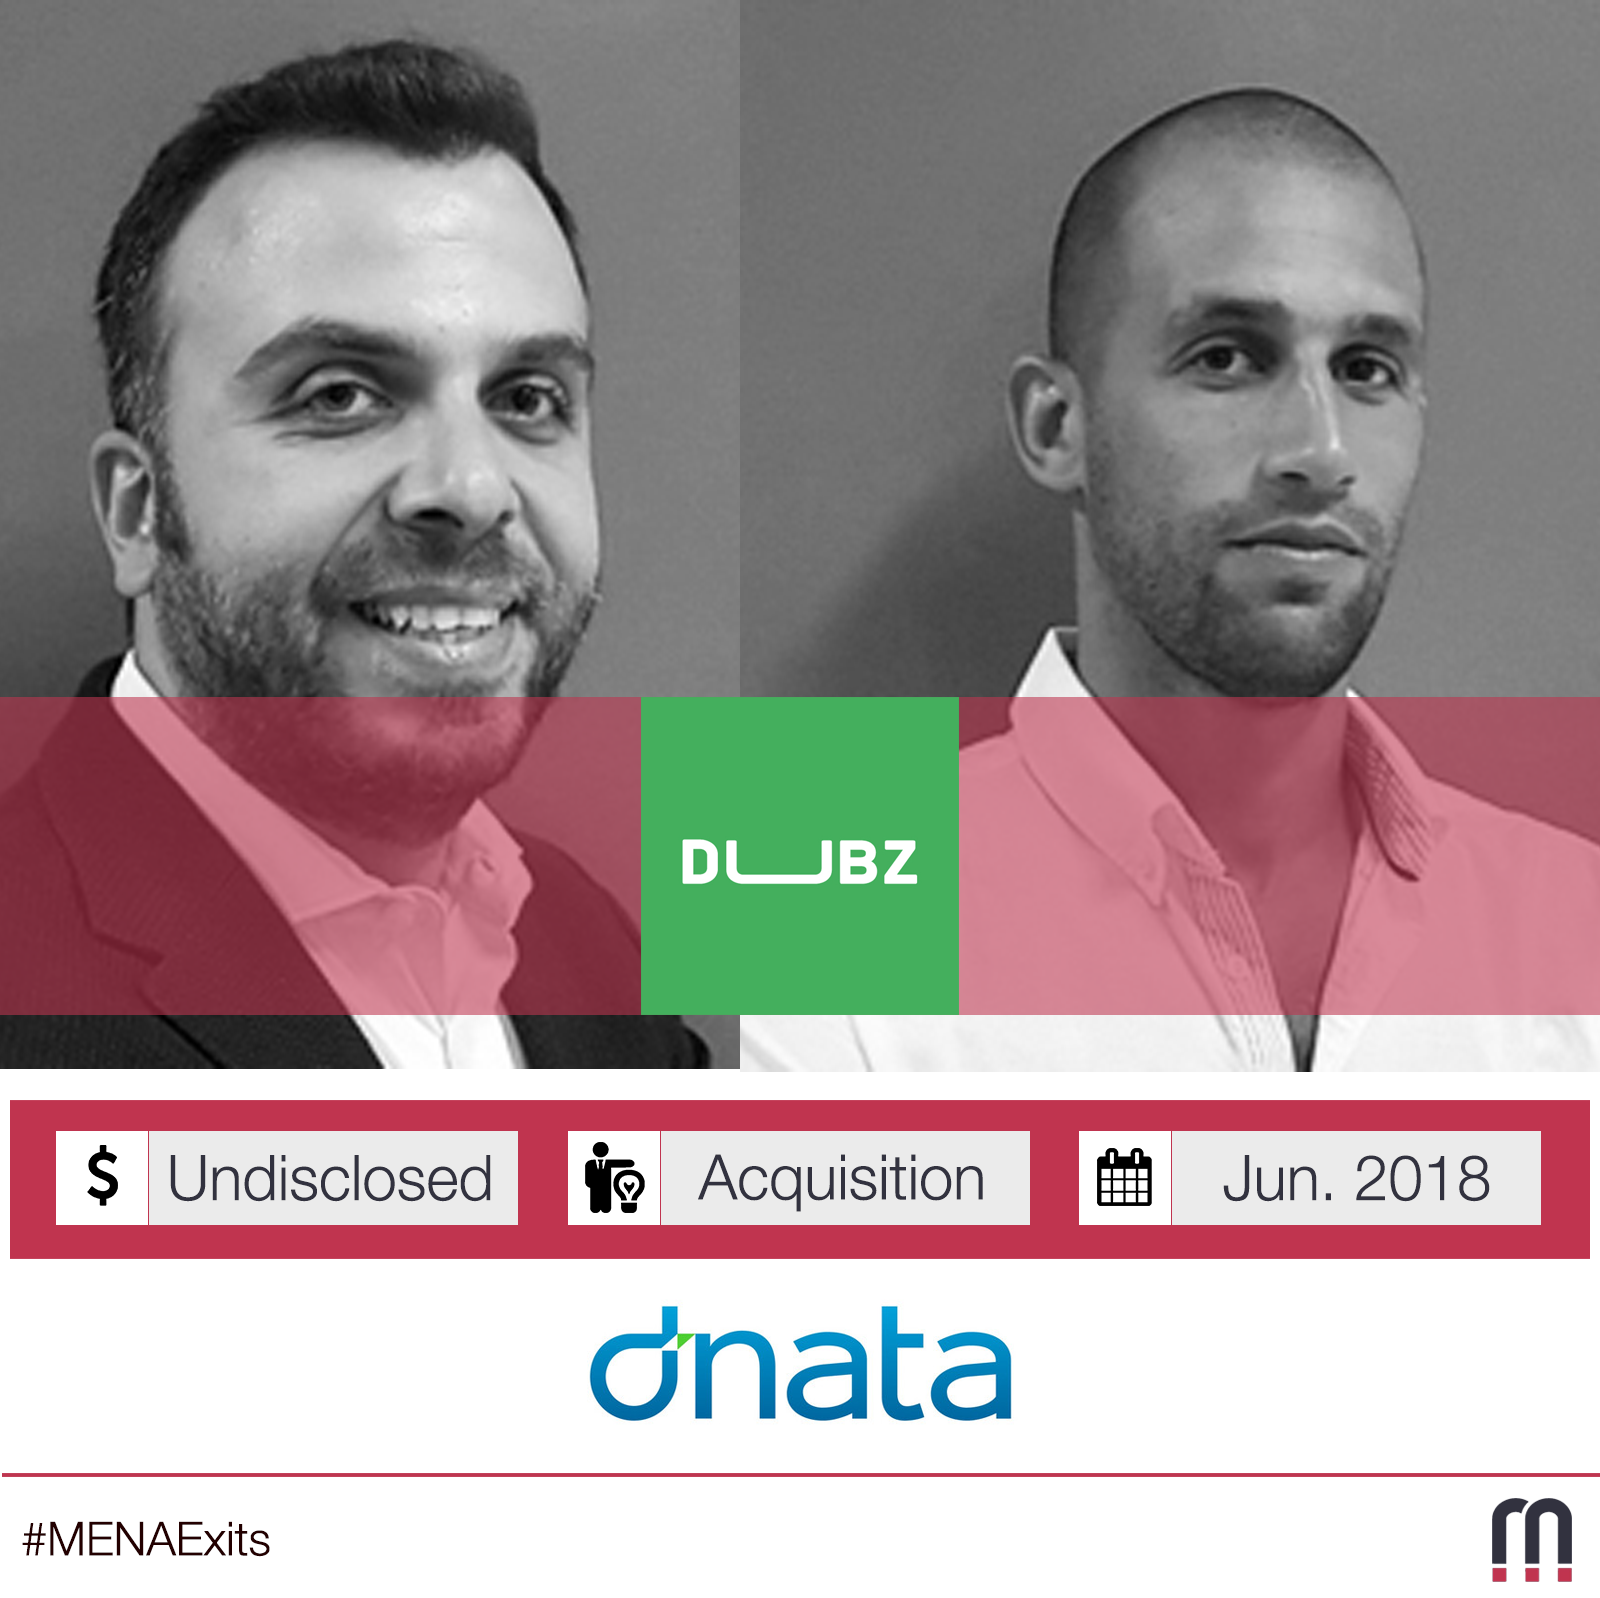 Dnata acquires majority stake in DUBZ, a baggage storage and delivery service startup